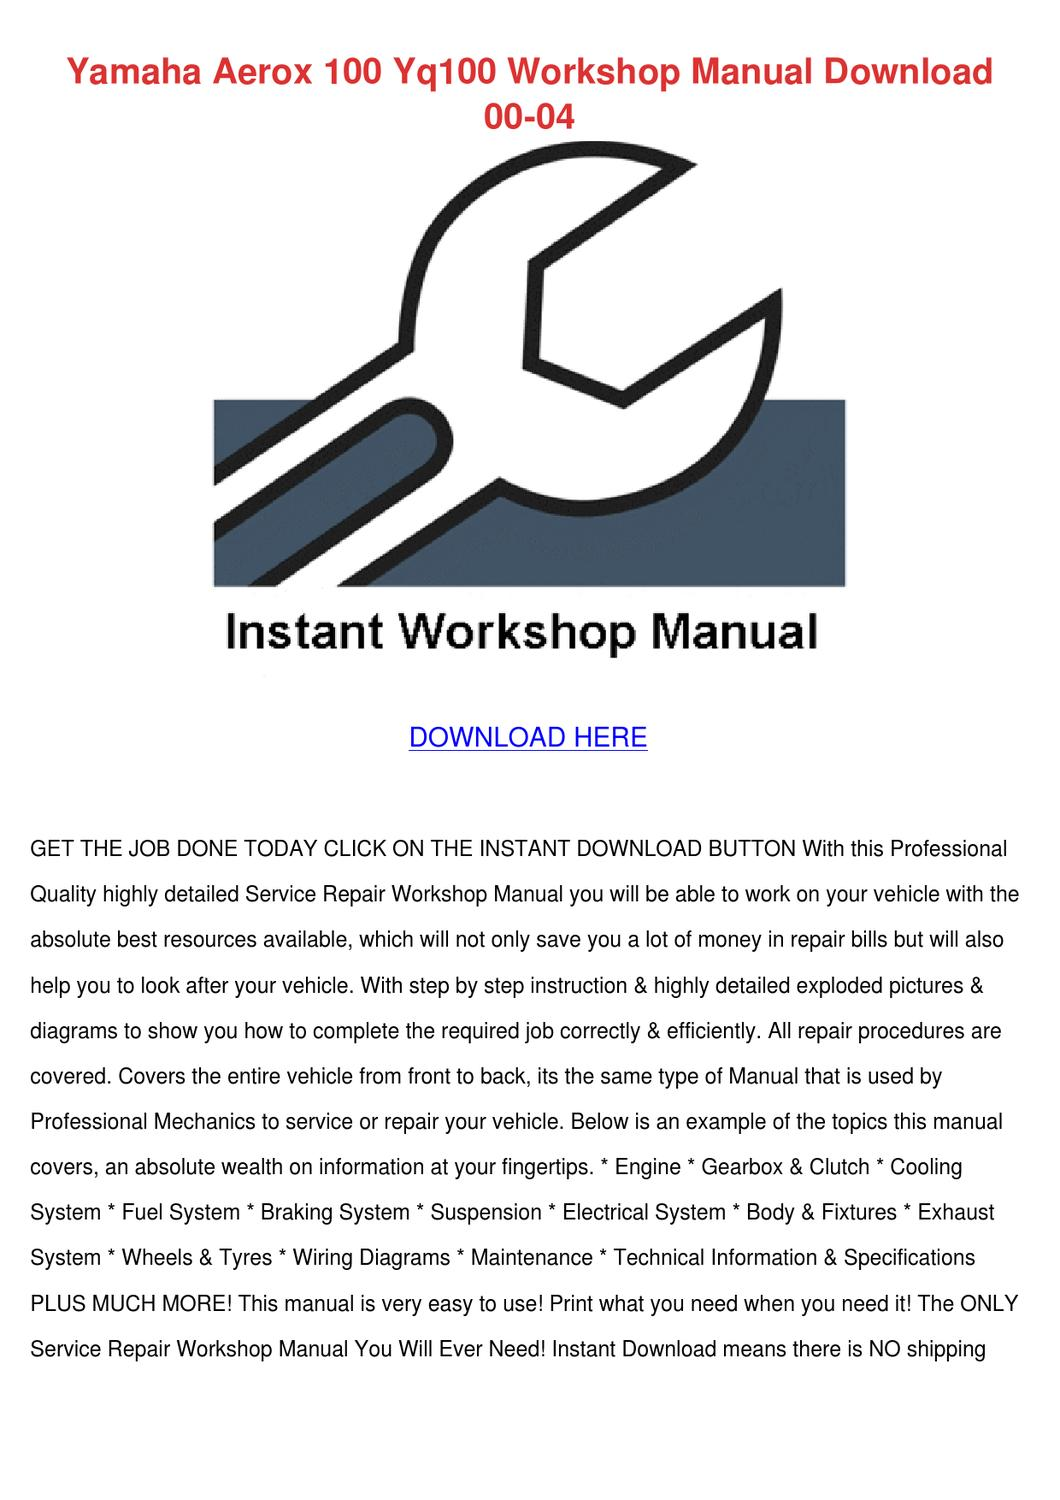 Yamaha Aerox 100 Yq100 Workshop Manual Downlo by Willette Galbavy - issuu